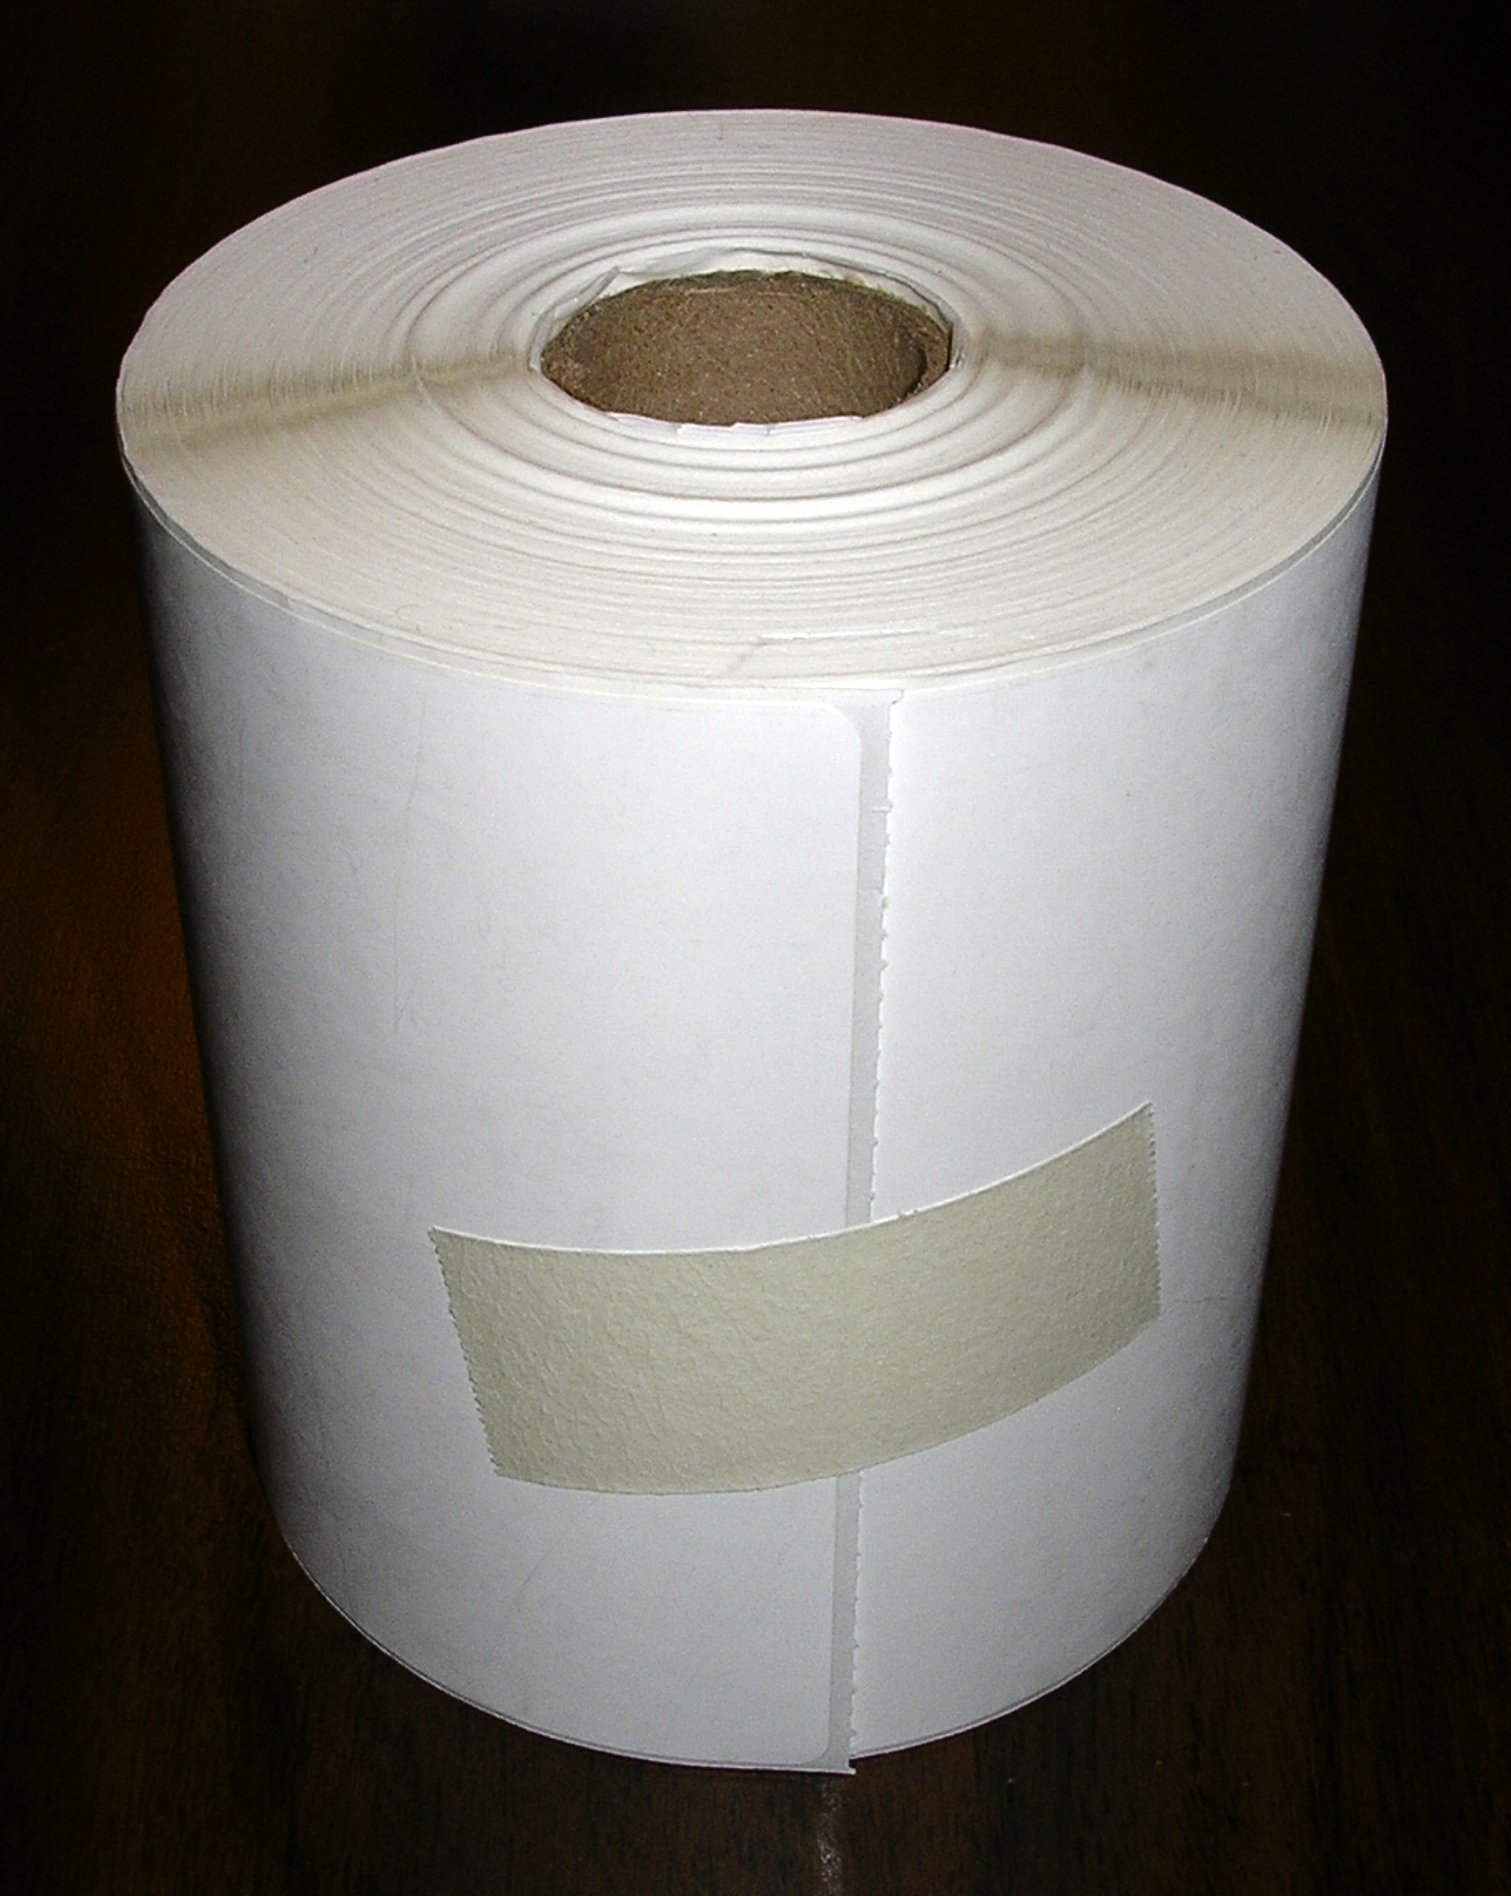 1 Roll of 250 Direct Thermal Labels, 4 x 6, for Zebra, Eltron, and Samsung Printers